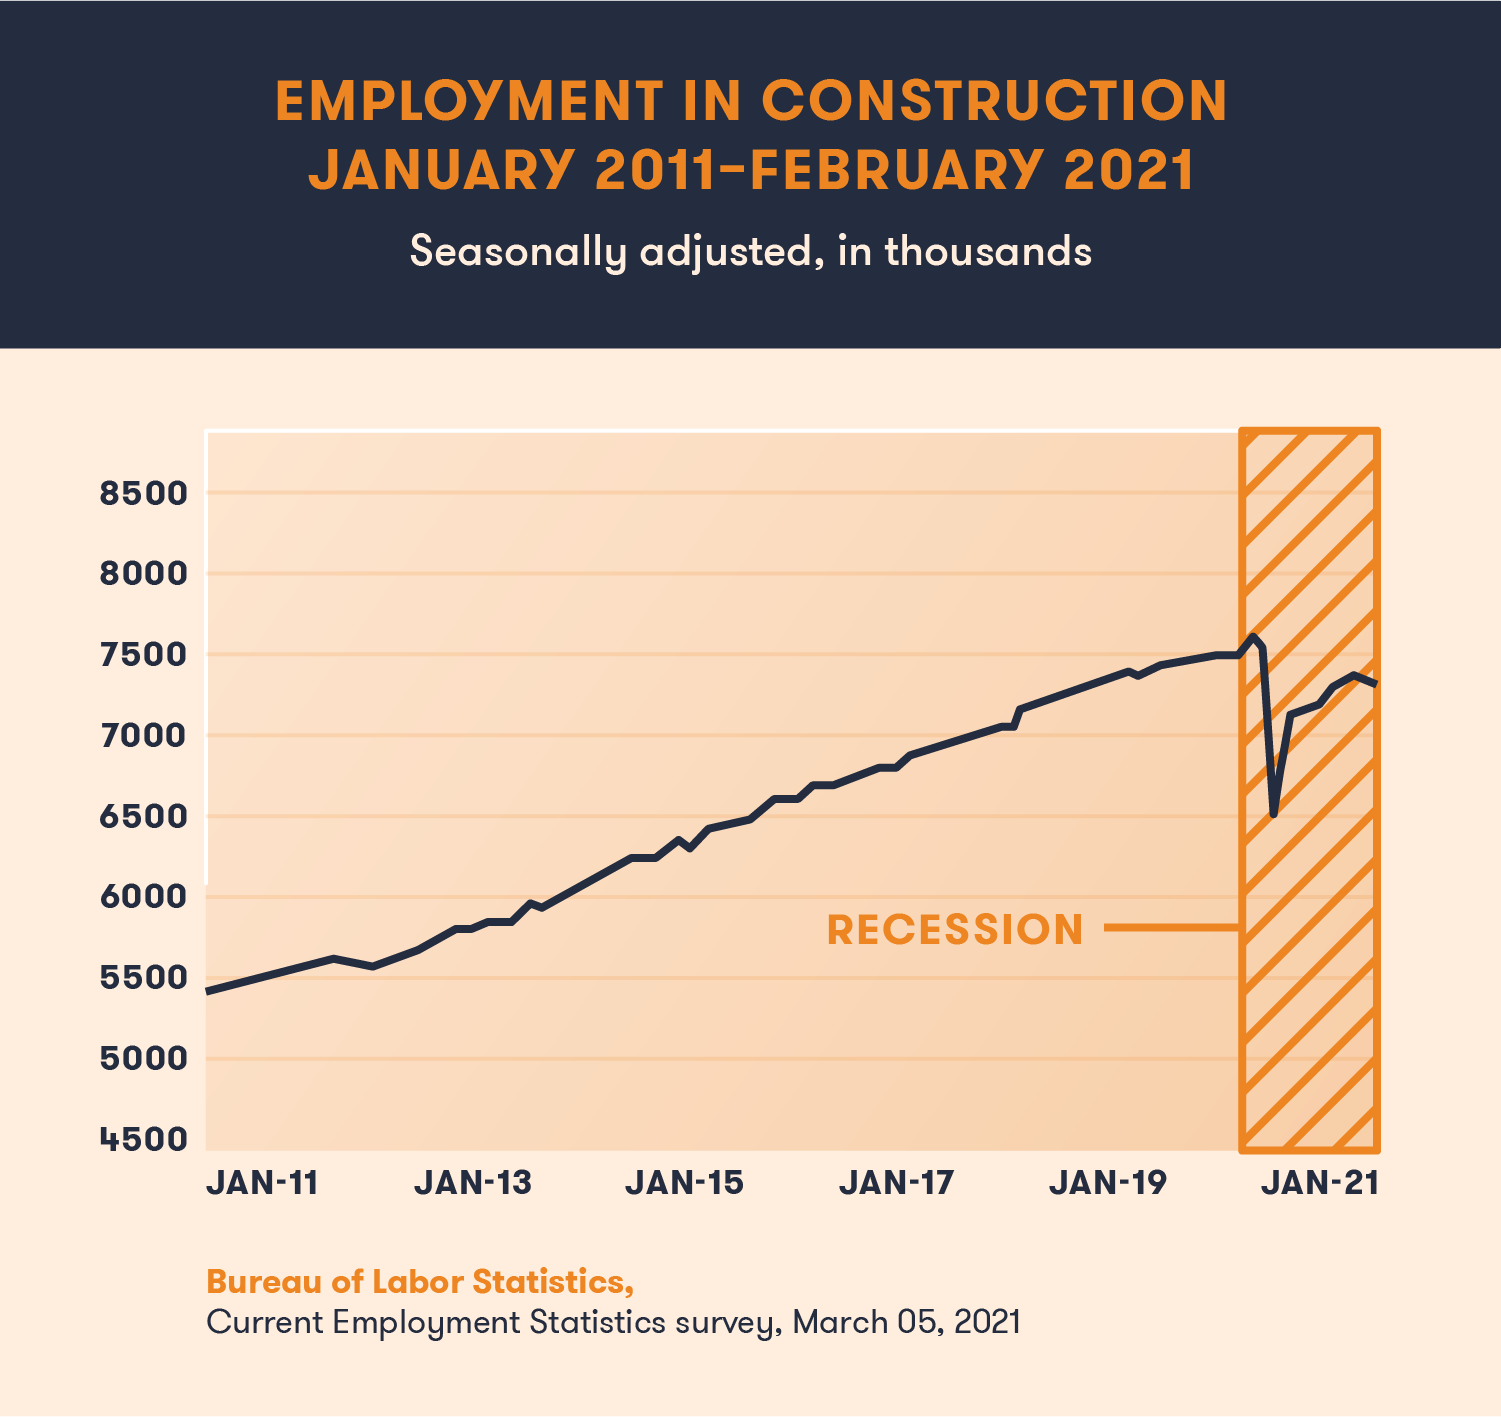 Employment in Construction January 2011 to February 2021